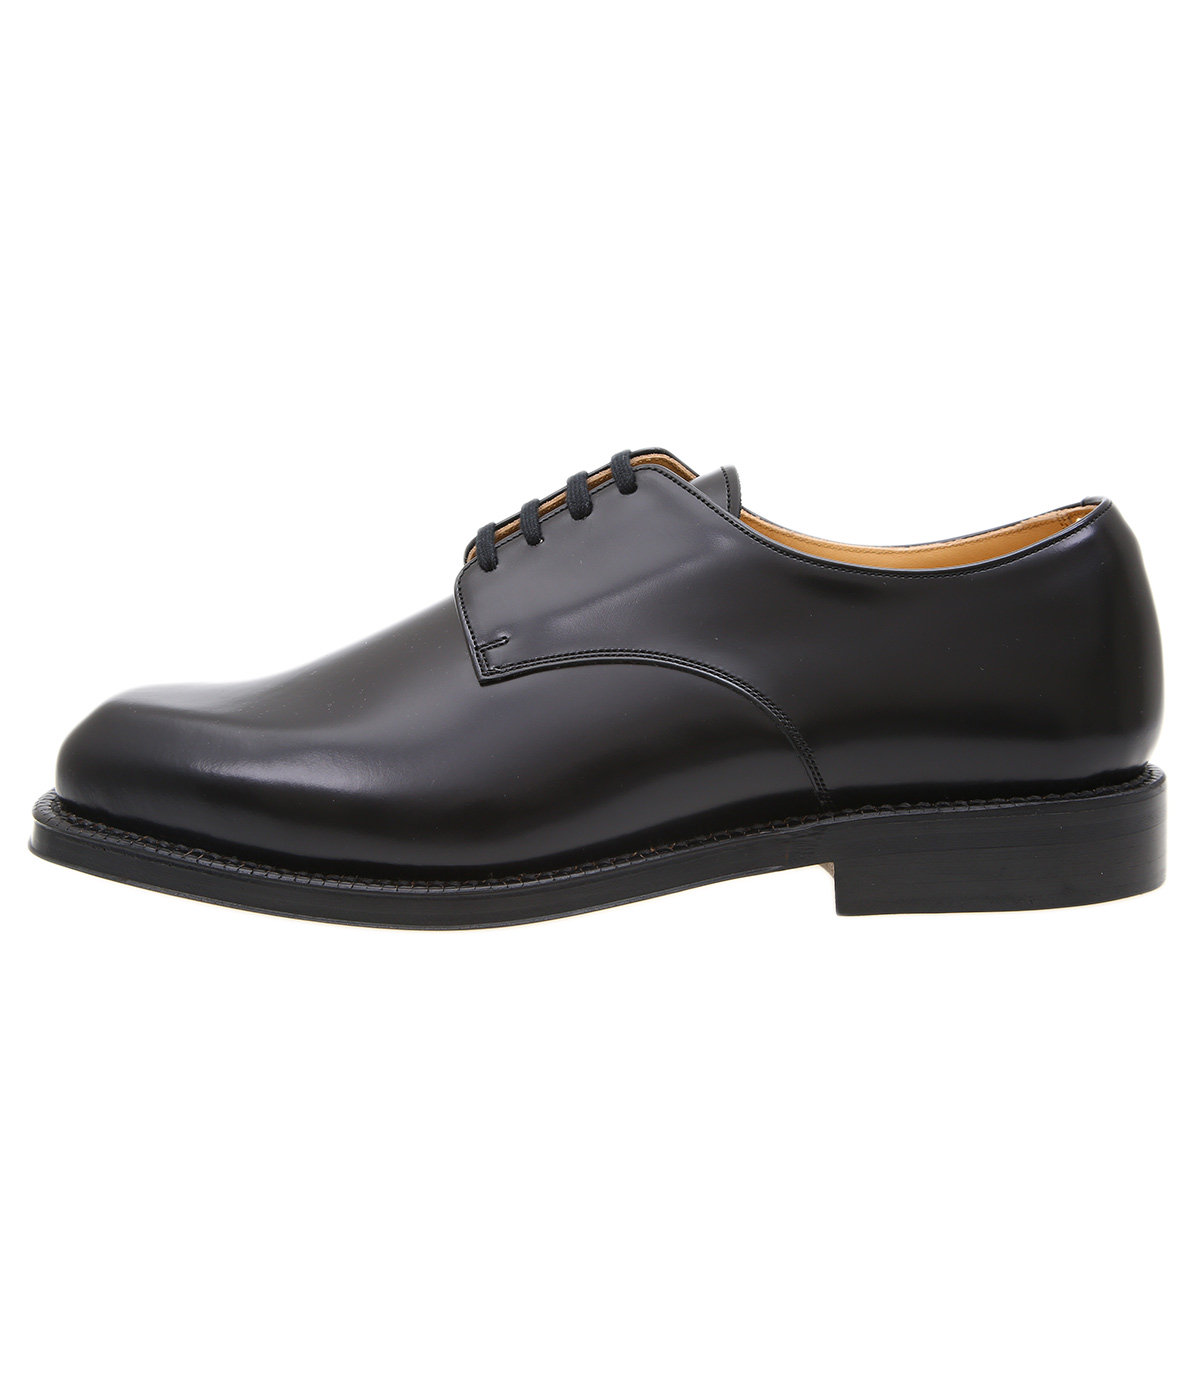 LEATHER SHOES MADE BY FOOT THE COACHER